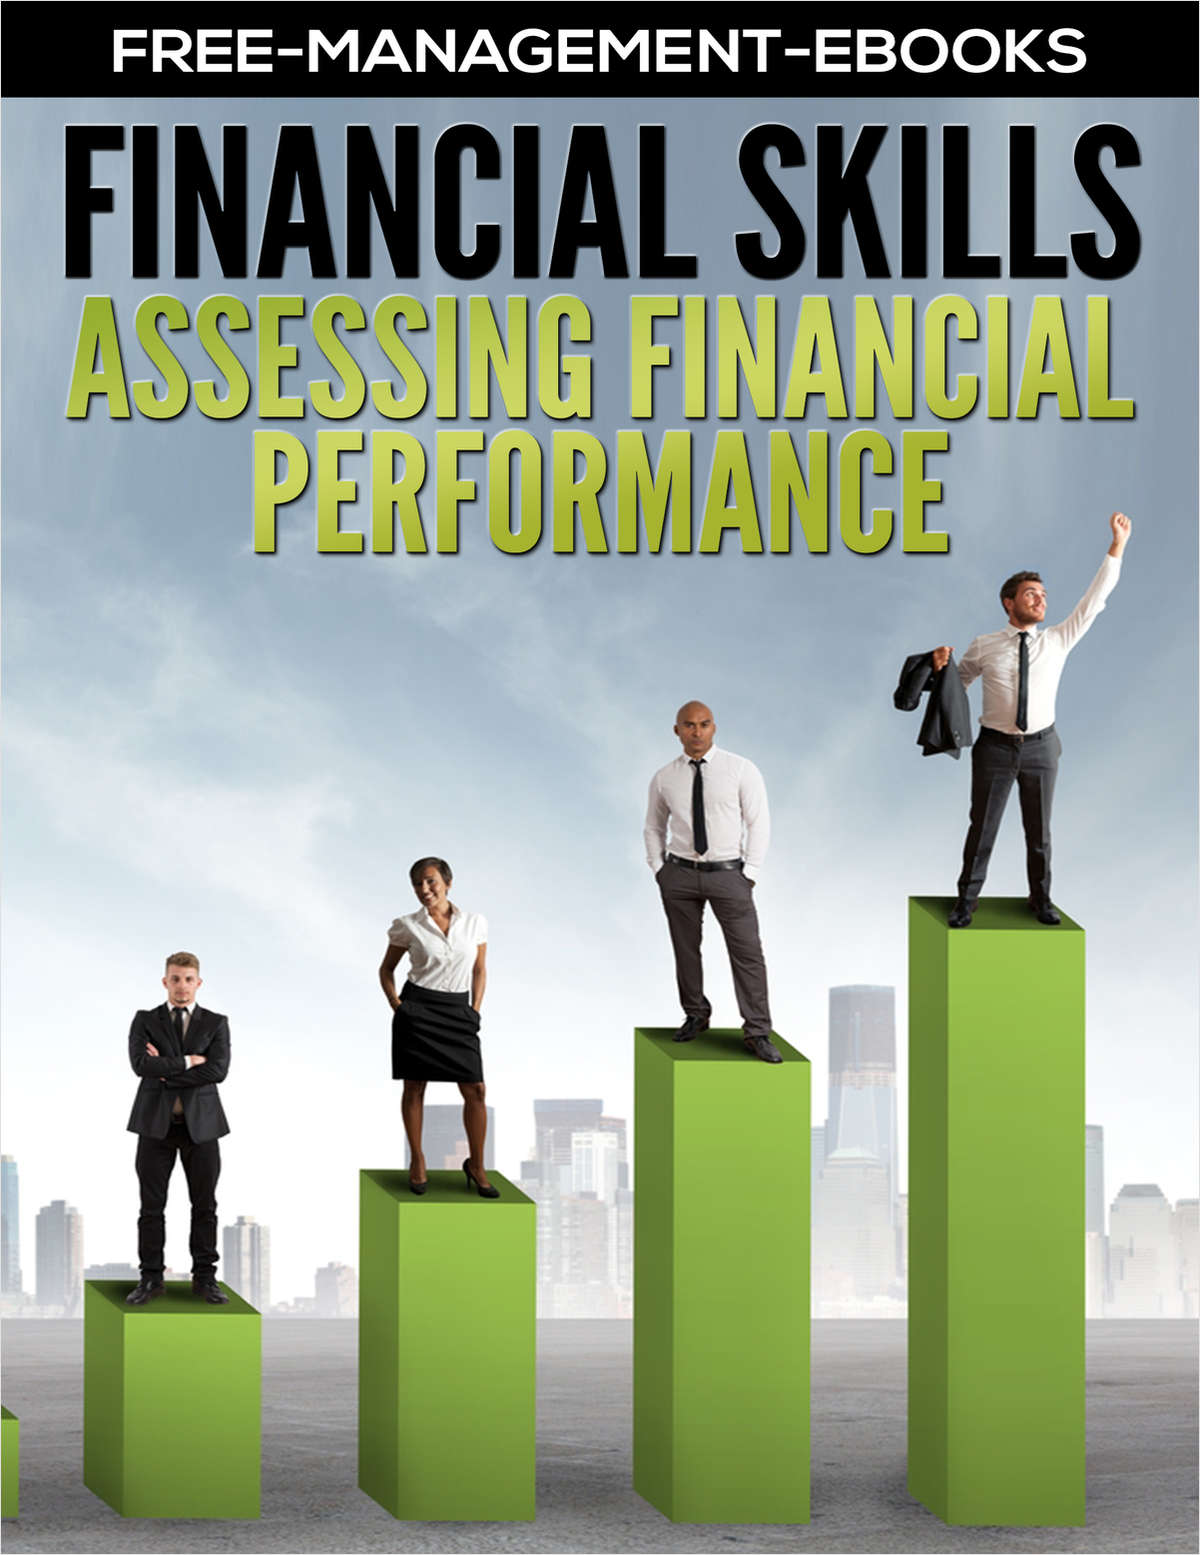 Assessing Financial Performance -- Developing Your Finance Skills